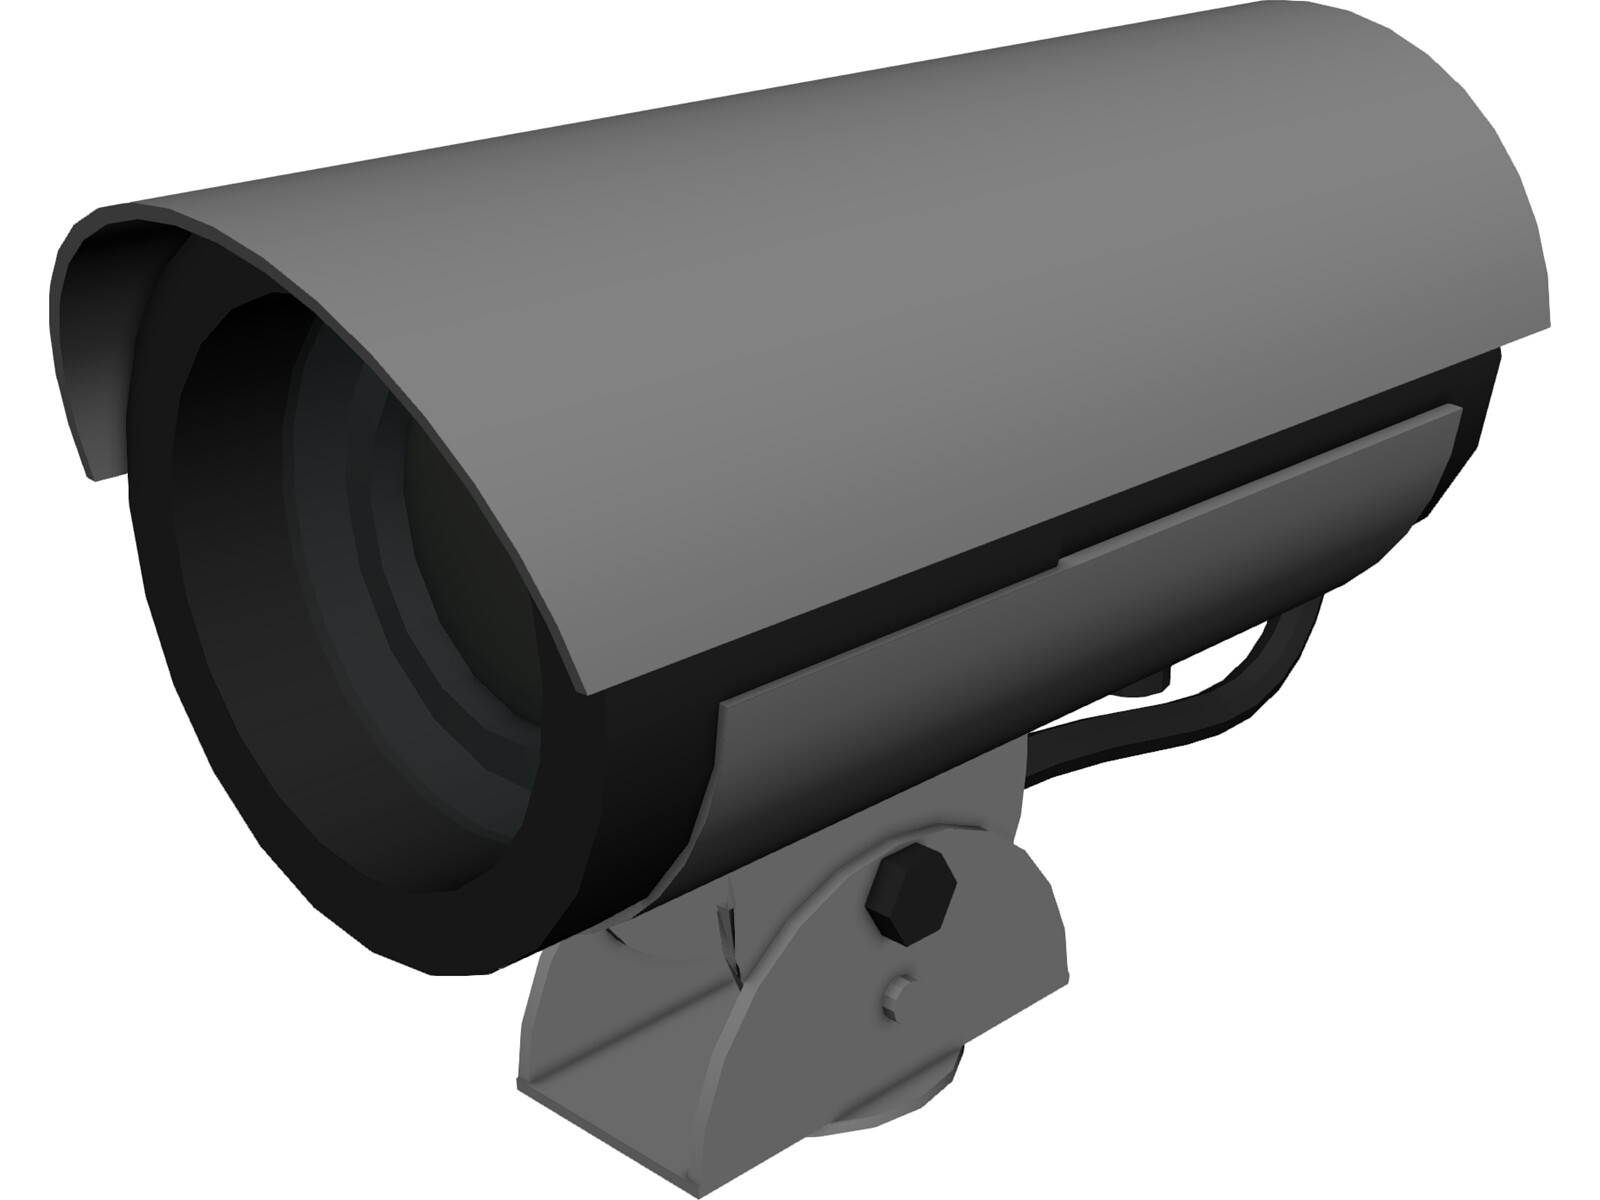 Cctv Camera 3d Model 3d Cad Browser